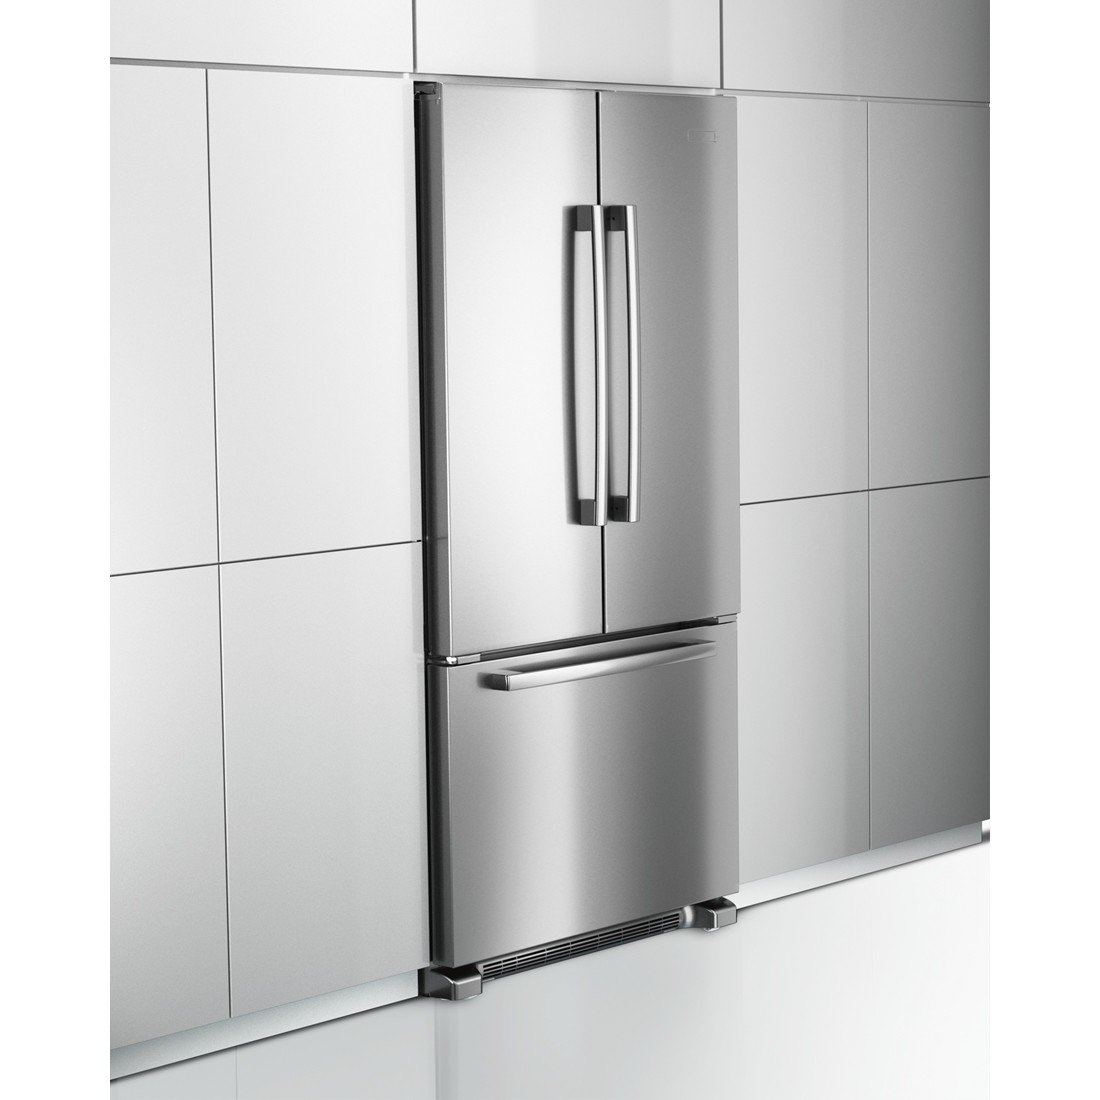 High Quality Amazon.com: Bosch B22CT80SNS 800 21.8 Cu. Ft. Stainless Steel Counter Depth  French Door Refrigerator: Appliances